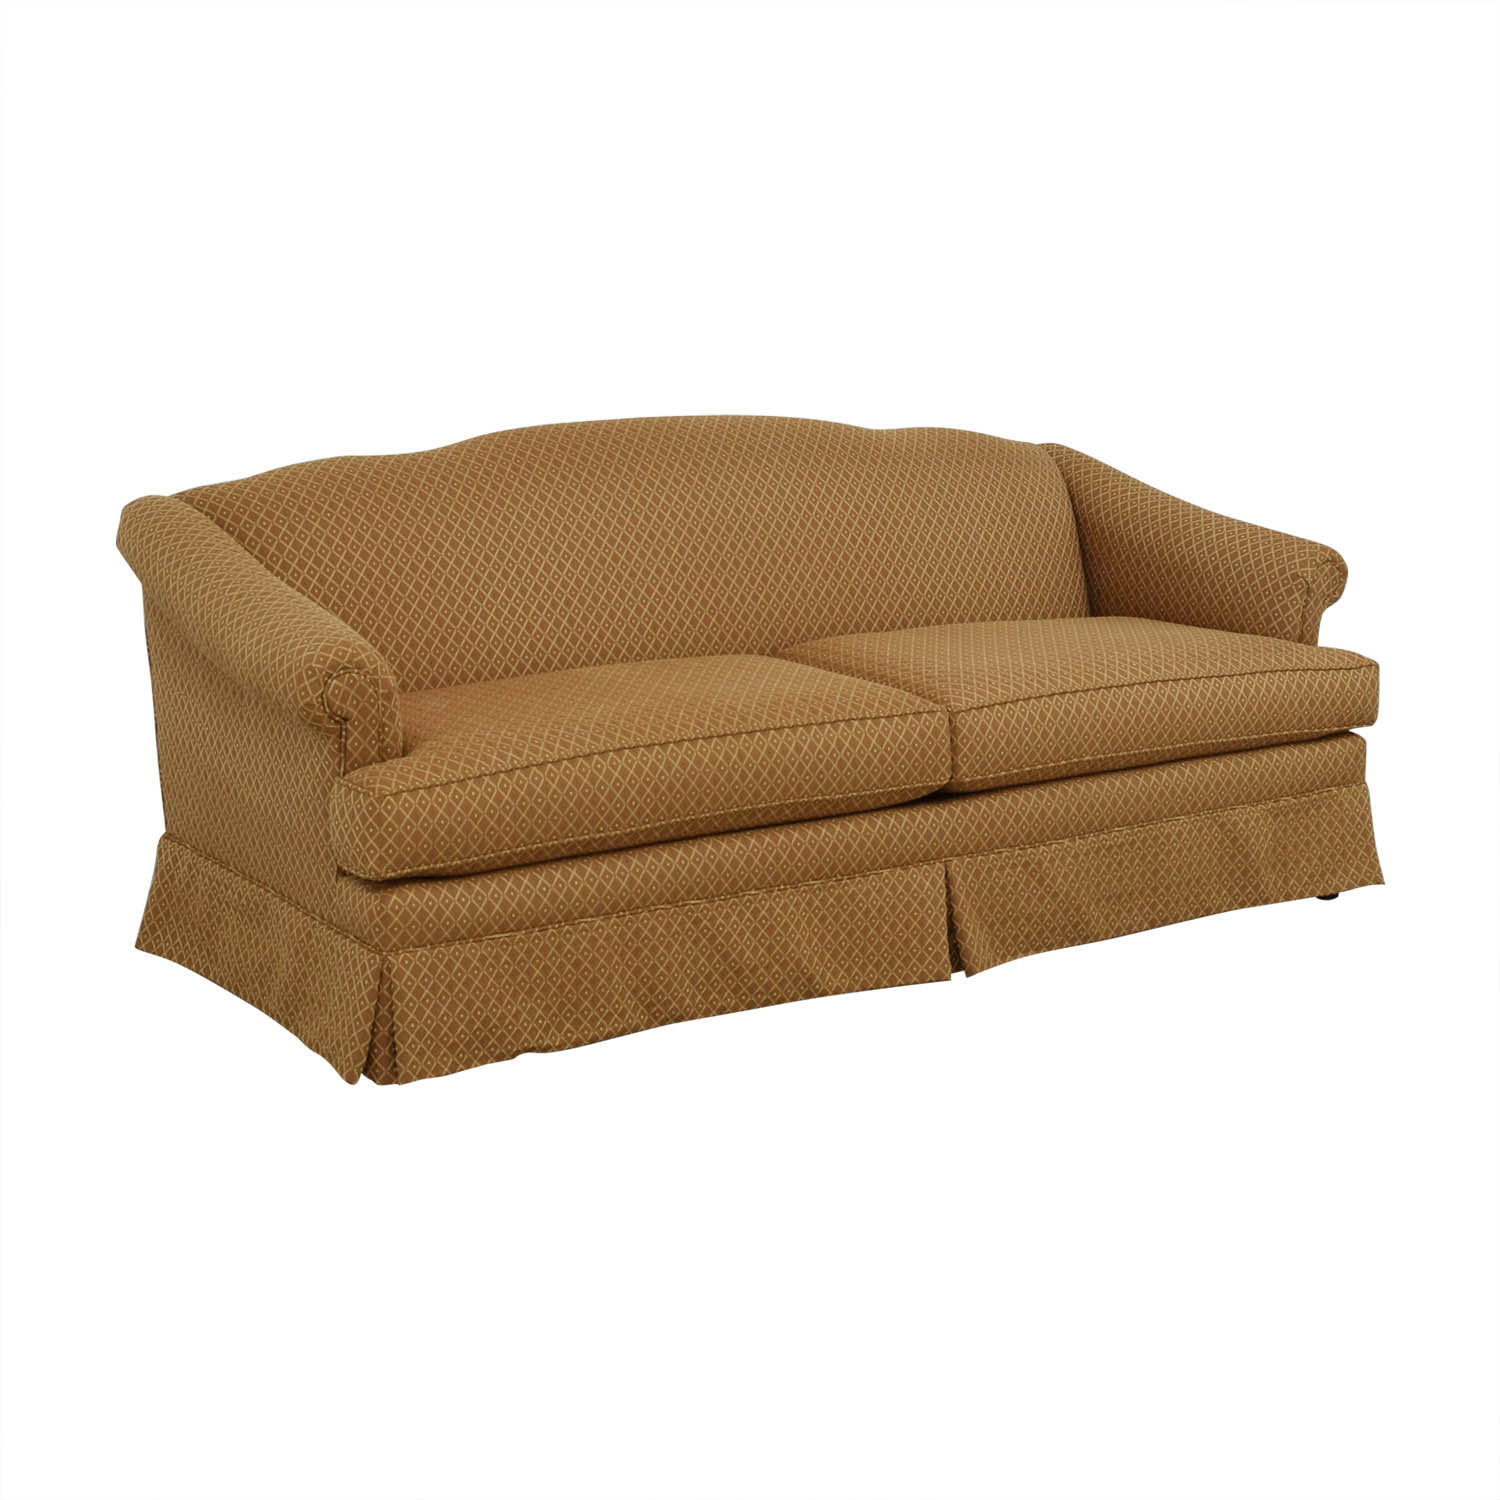 Thomasville Thomasville Maribel Sofa brown